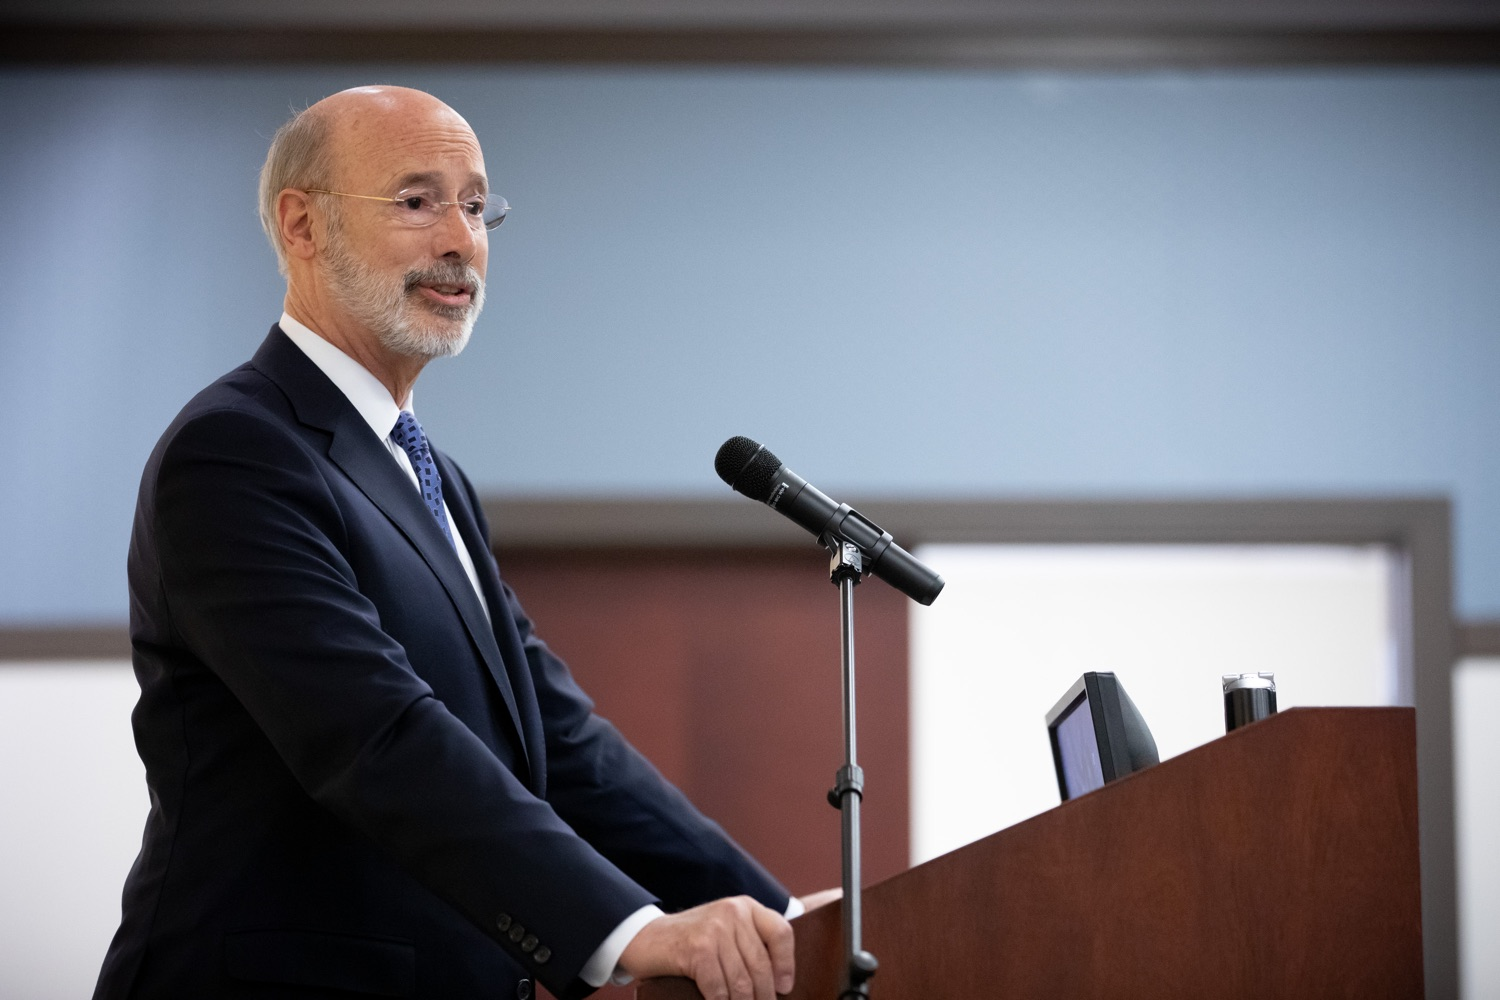 "<a href=""http://filesource.abacast.com/commonwealthofpa/photo/17598_gov_charter_schools_dz_006.jpg"" target=""_blank"">⇣ Download Photo<br></a>Pennsylvania Governor Tom Wolf speaks about charter school reform at a meeting of the Pennsylvania Association of School Administrators.  Governor Tom Wolfs commonsense plan to improve the educational quality of charter schools and control rising costs will save nearly $280 million a year, the governor told the Pennsylvania Association of School Administrators today. The governor has a three-part plan to fix Pennsylvanias charter school law which is regarded as one of the worst in the nation.  - Harrisburg, PA. Friday, November 15, 2019."